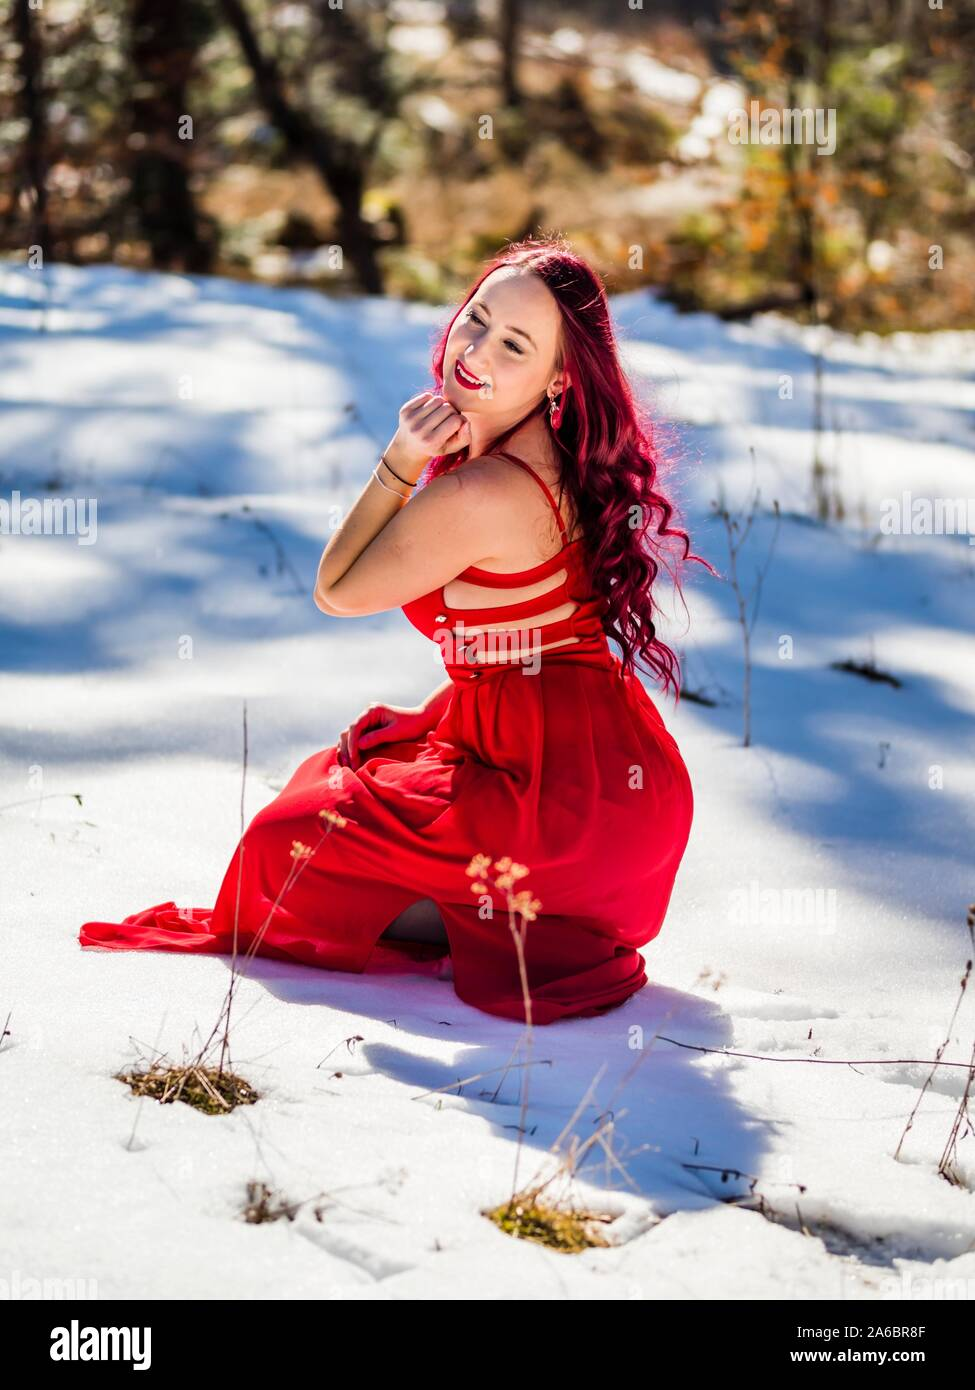 Young woman on snow squatting dressed fancifully looking towards camera smiling Stock Photo